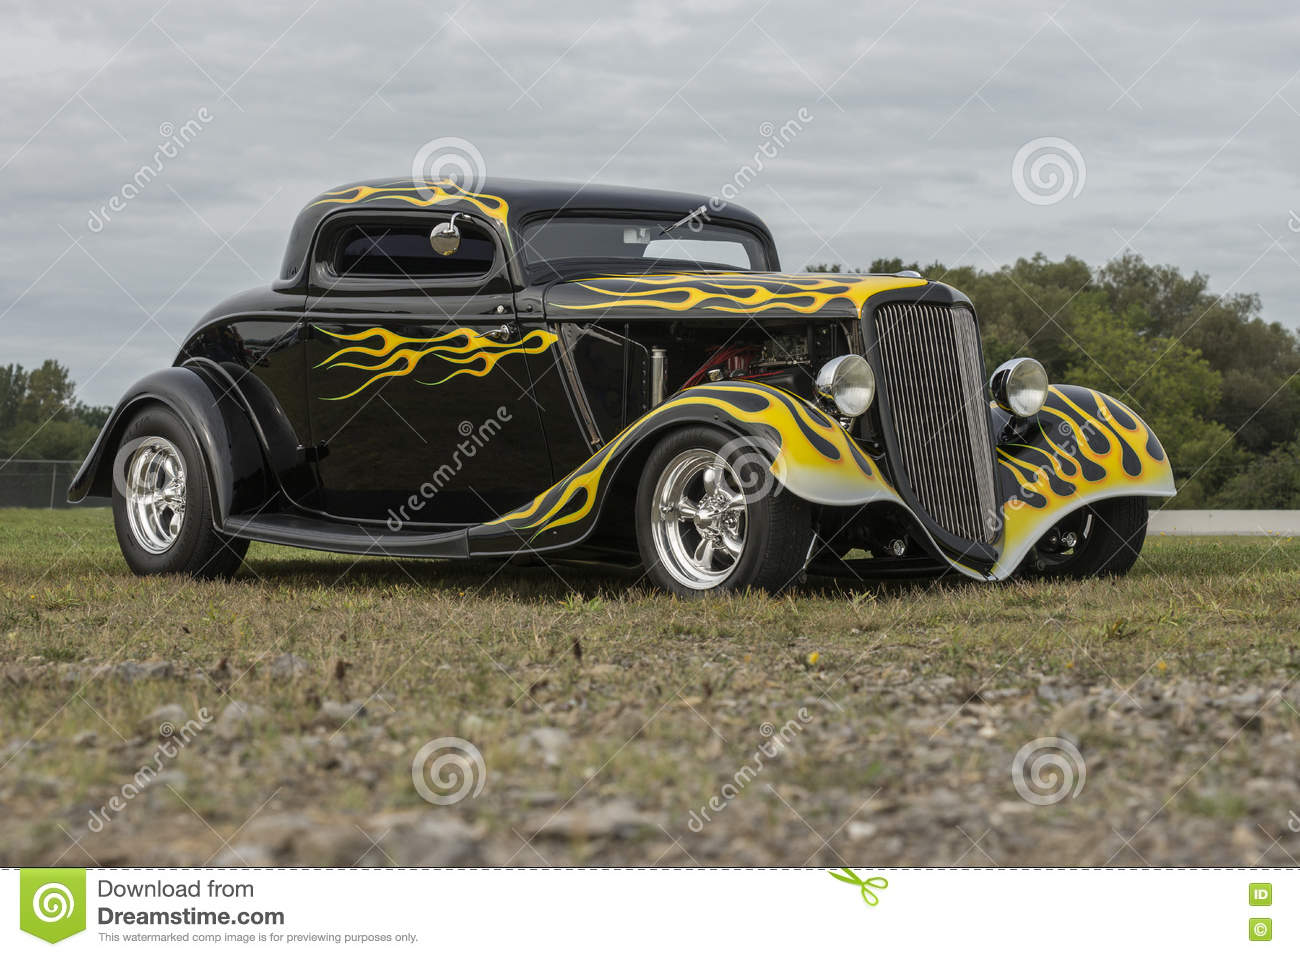 Black Custom Hot Rod With Flames Editorial Photo - Image of grill ...